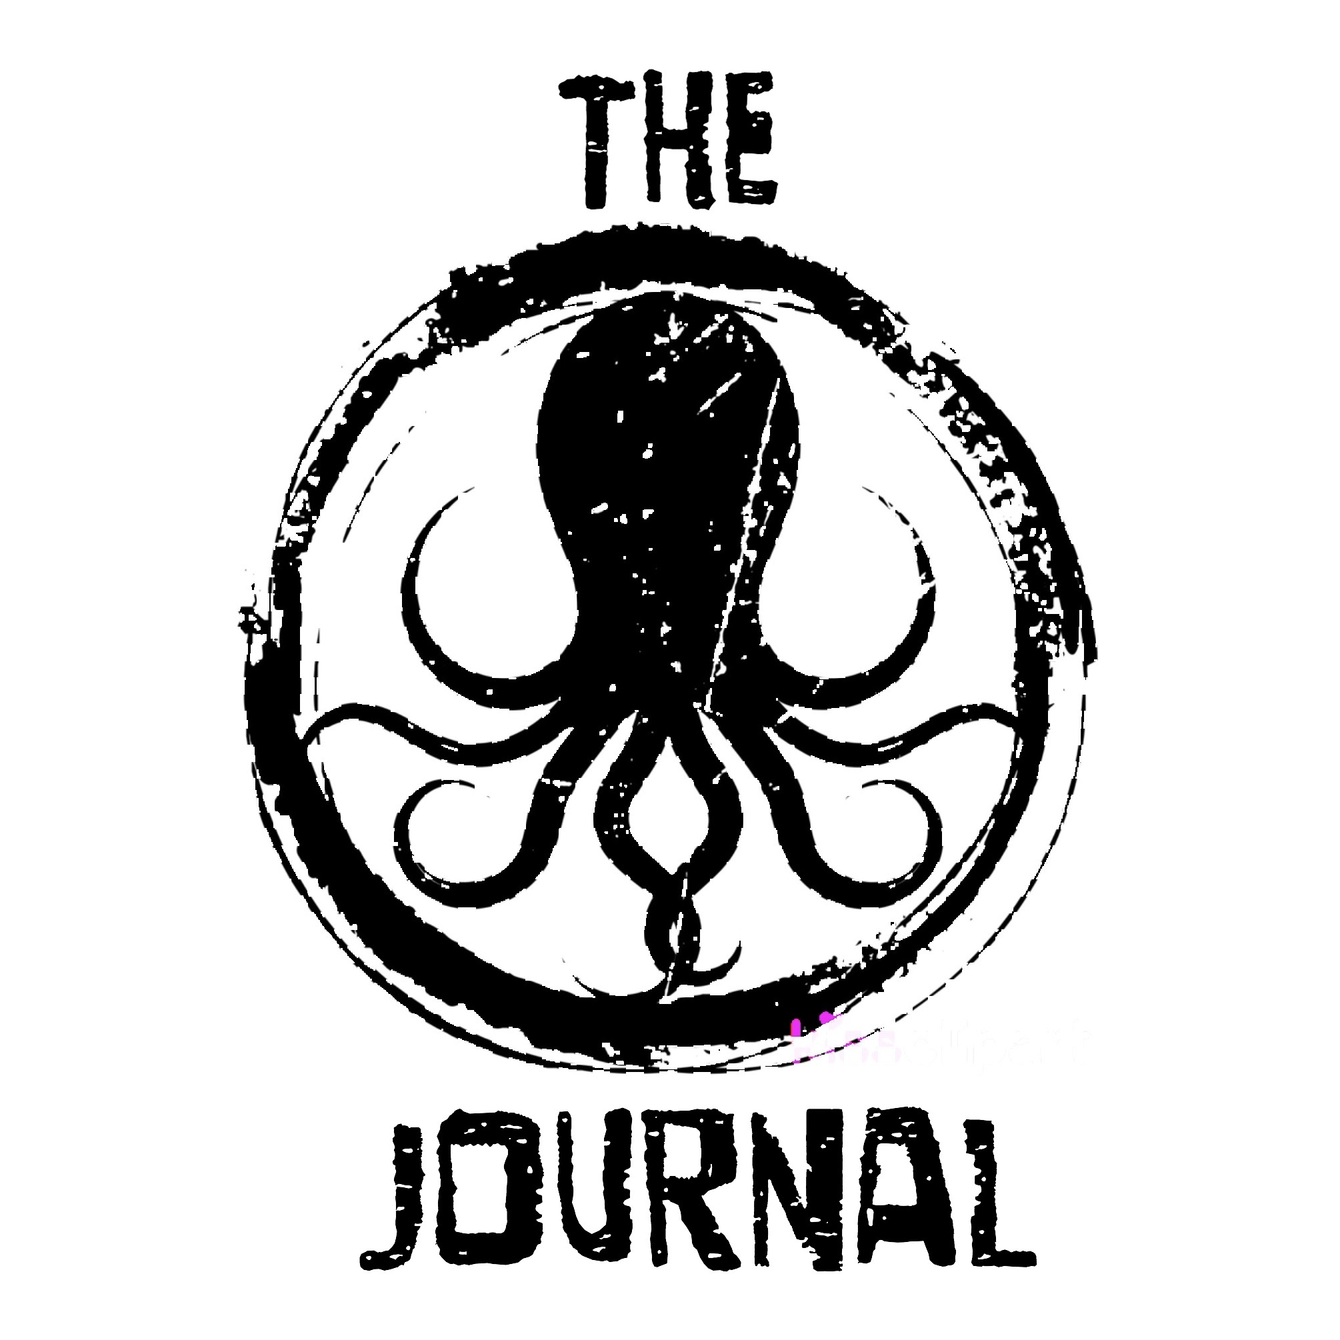 The Octopus Journal